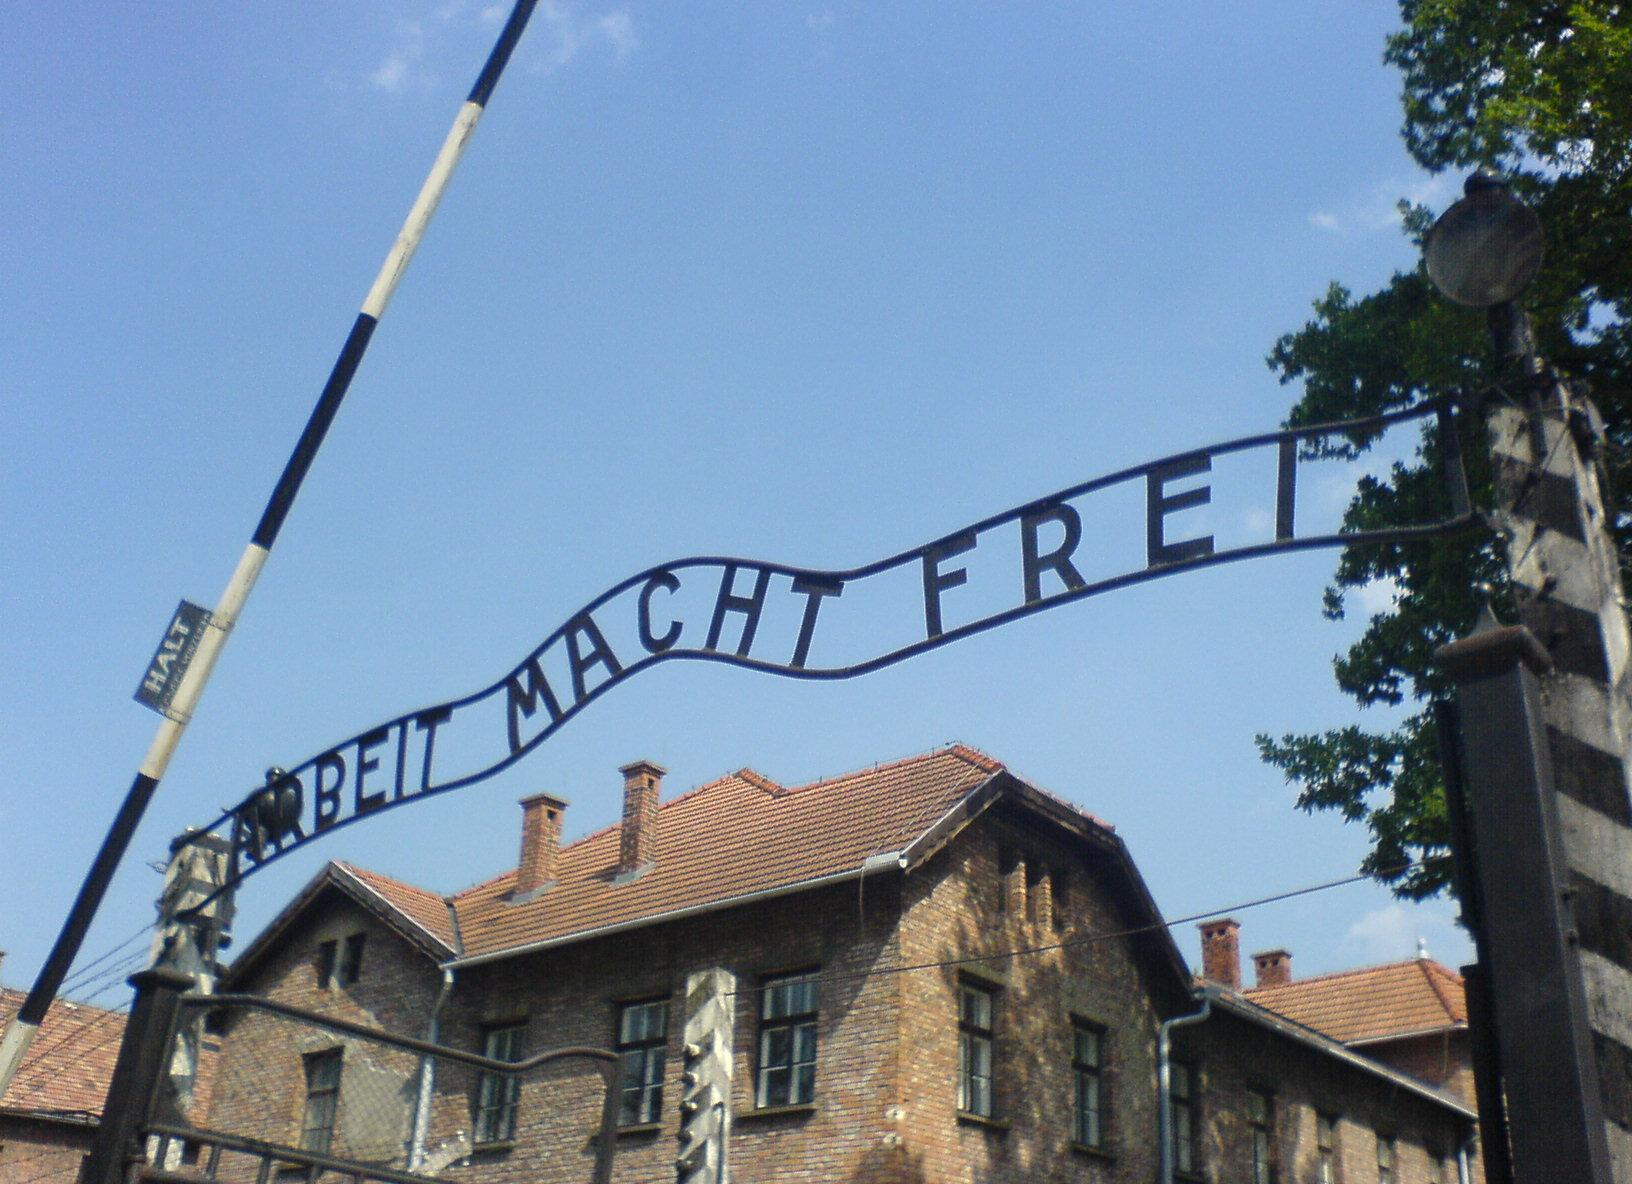 The entry gate to Auschwitz concentration camp, taken in July 2006